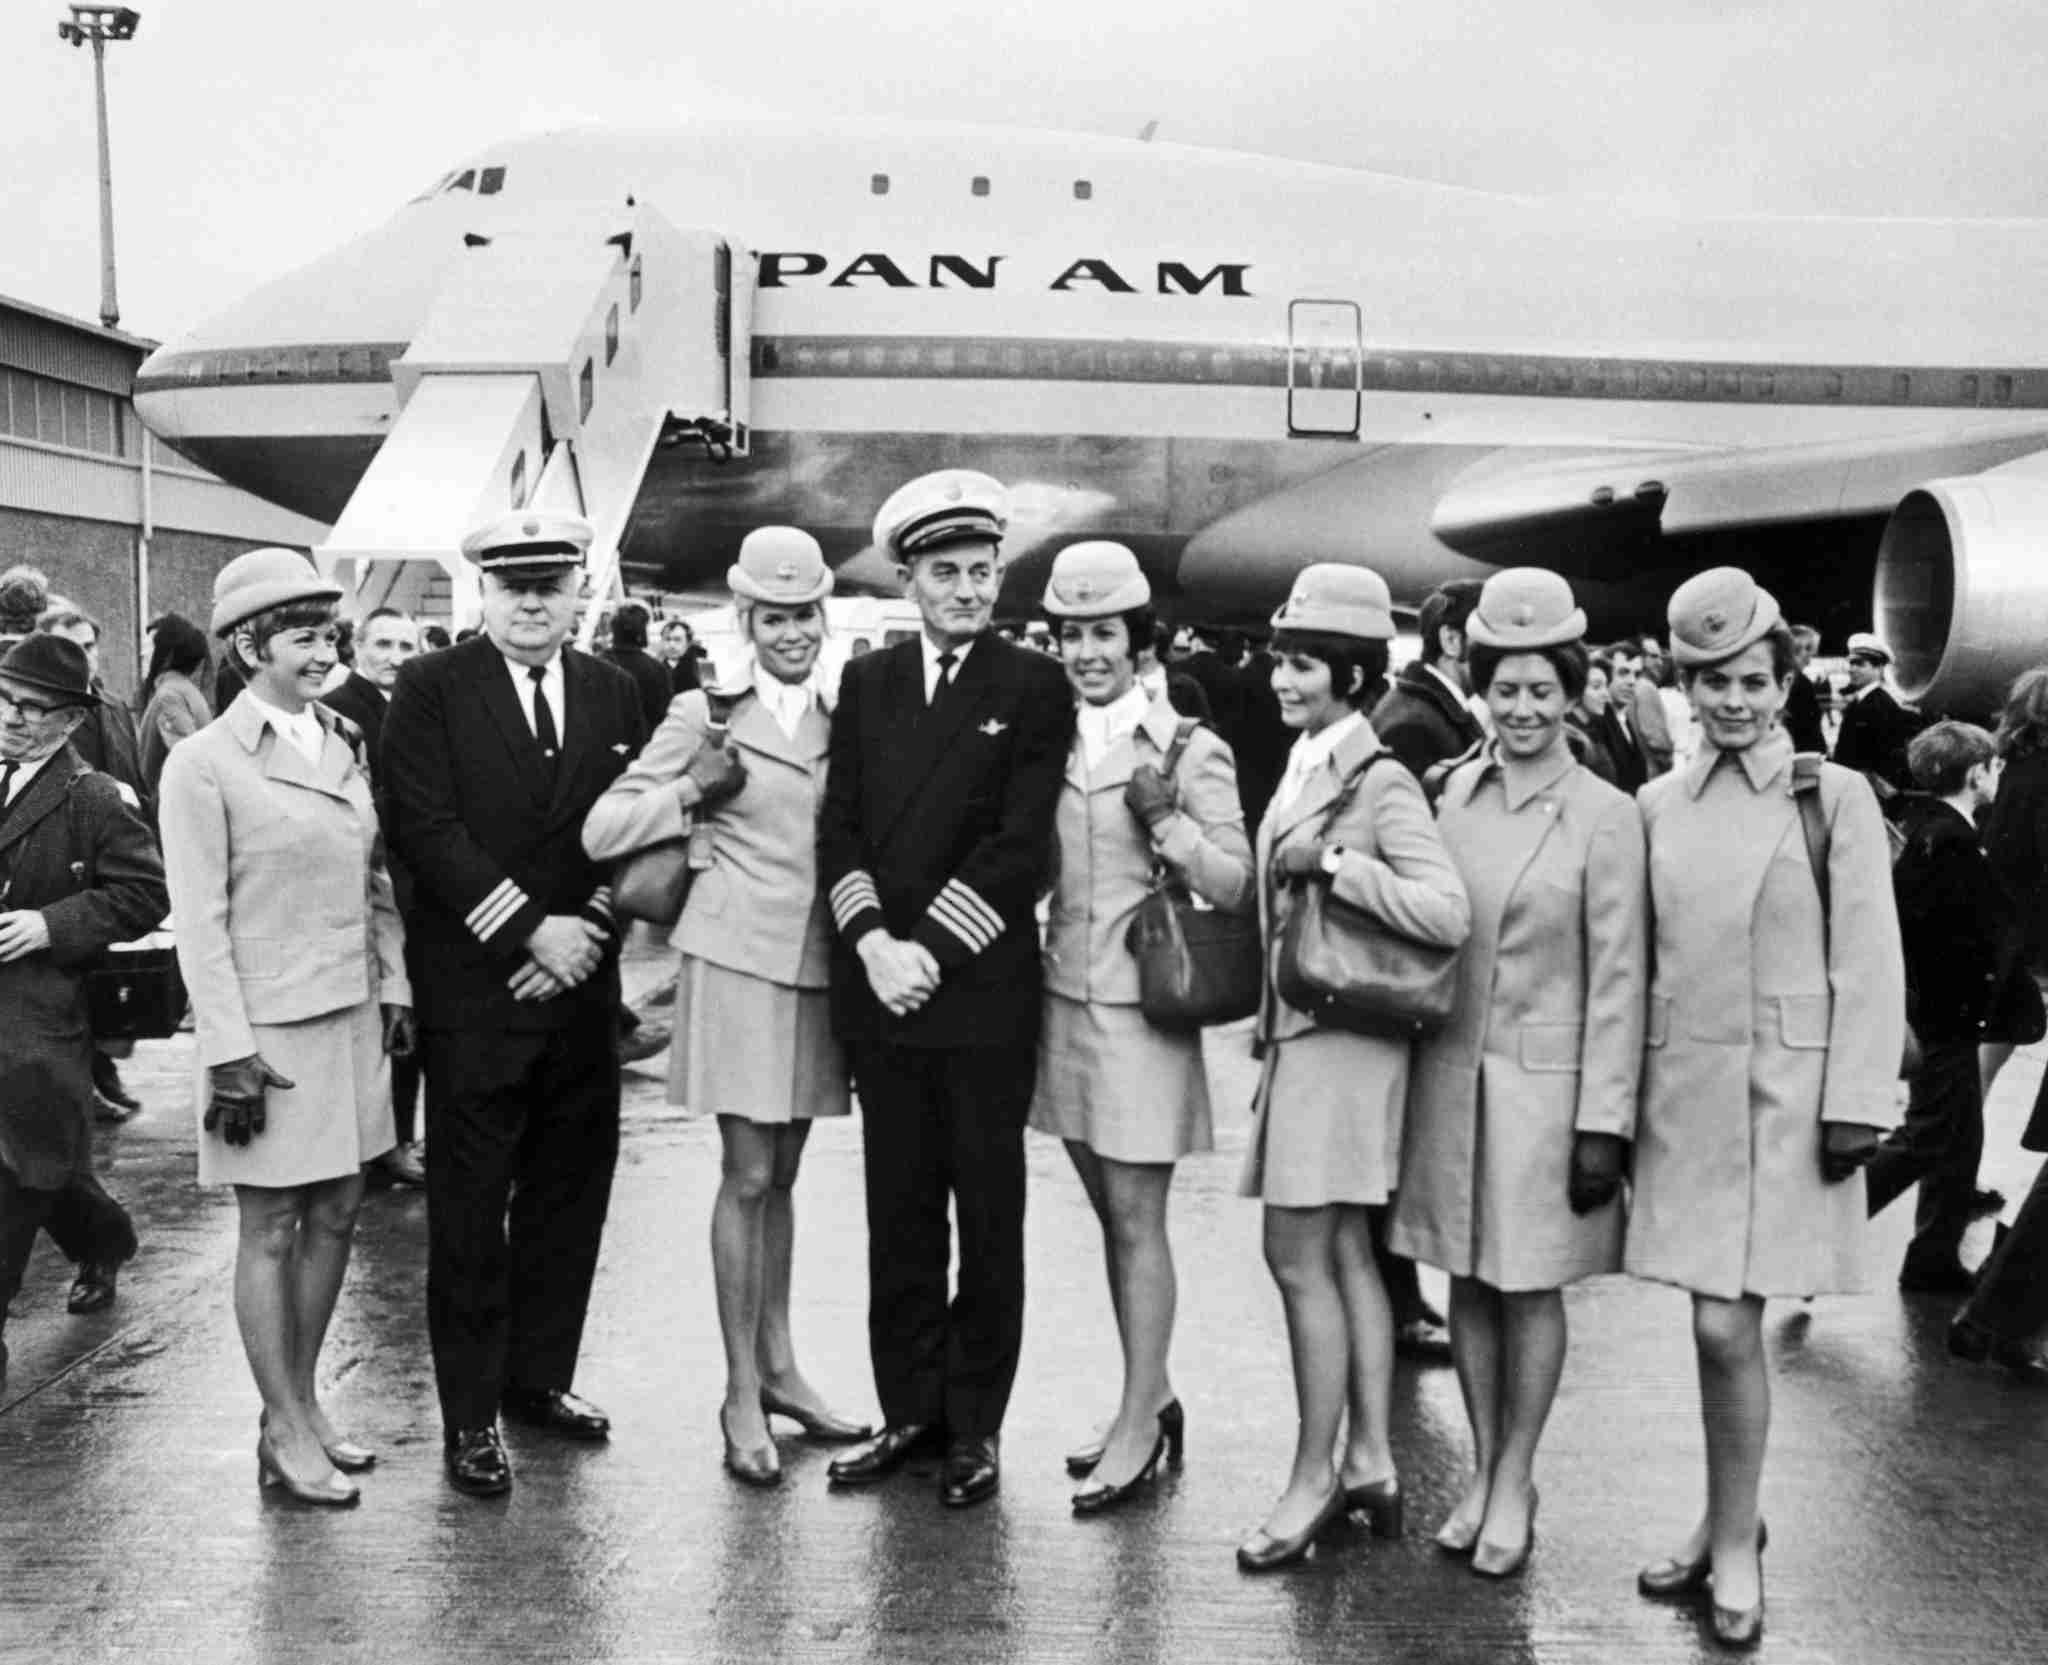 Family picture taken on January 13, 1970 of the aircrew of the first commercial flight of the Boeing 747 from New York to London for Pan American. On September 30, 1968, the first 747 was rolled out of the Everett assembly building before the world